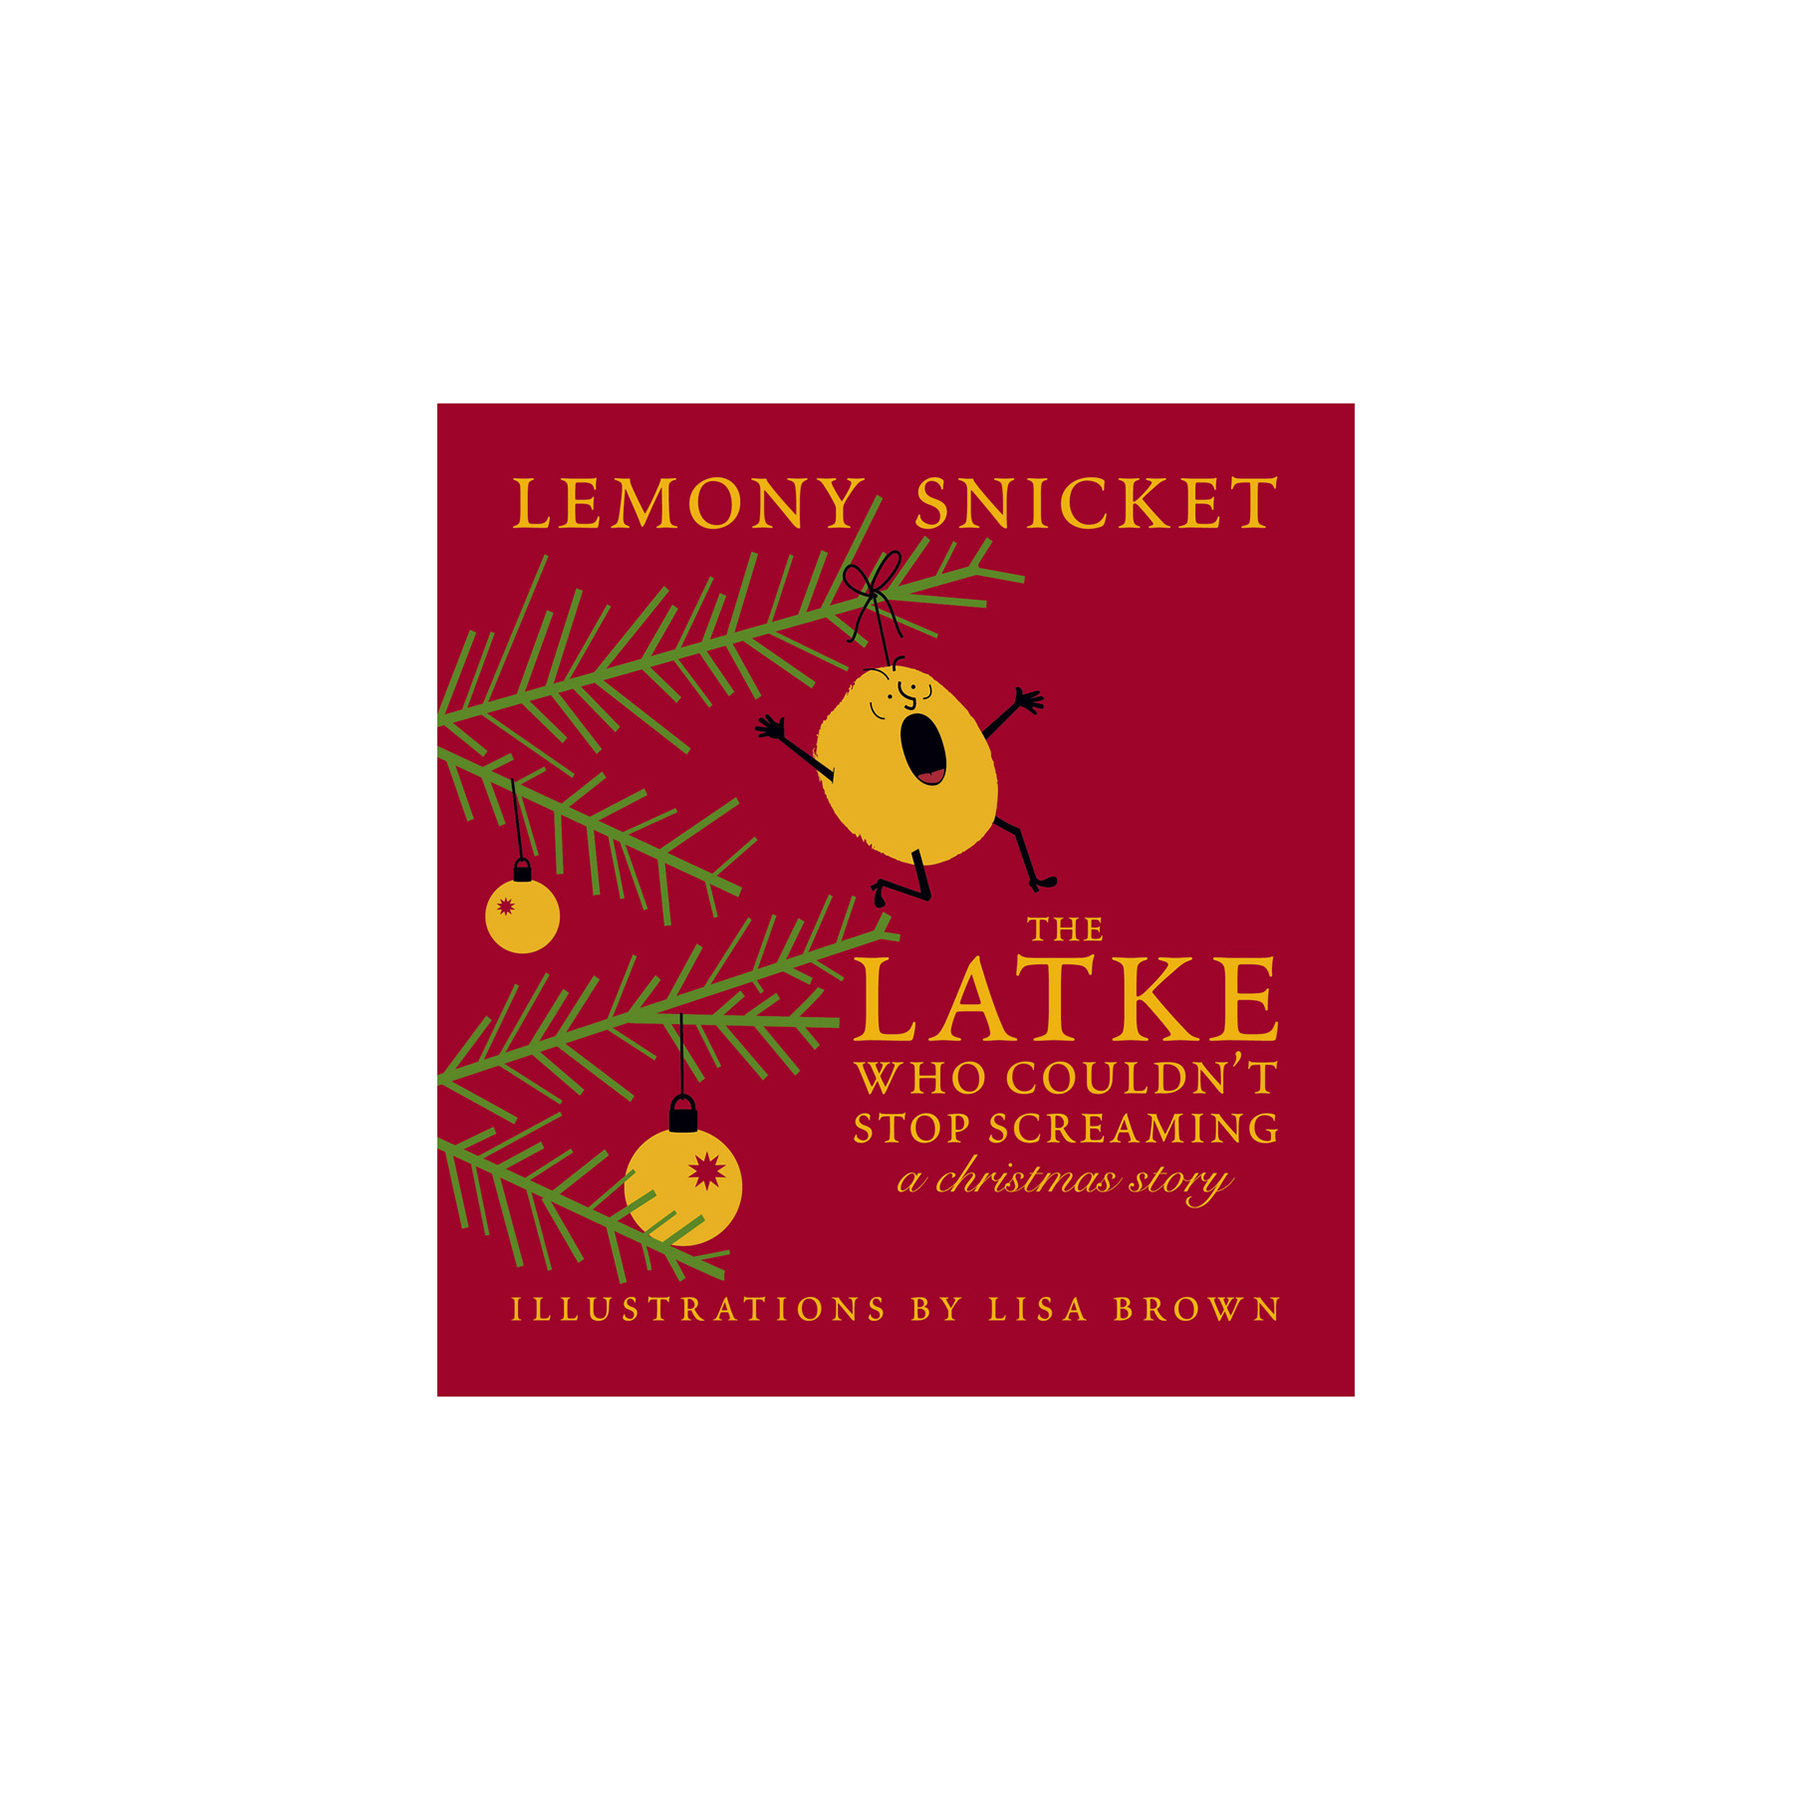 The Latke Who Couldn't Stop Screaming: A Christmas Story, by Lemony Snicket